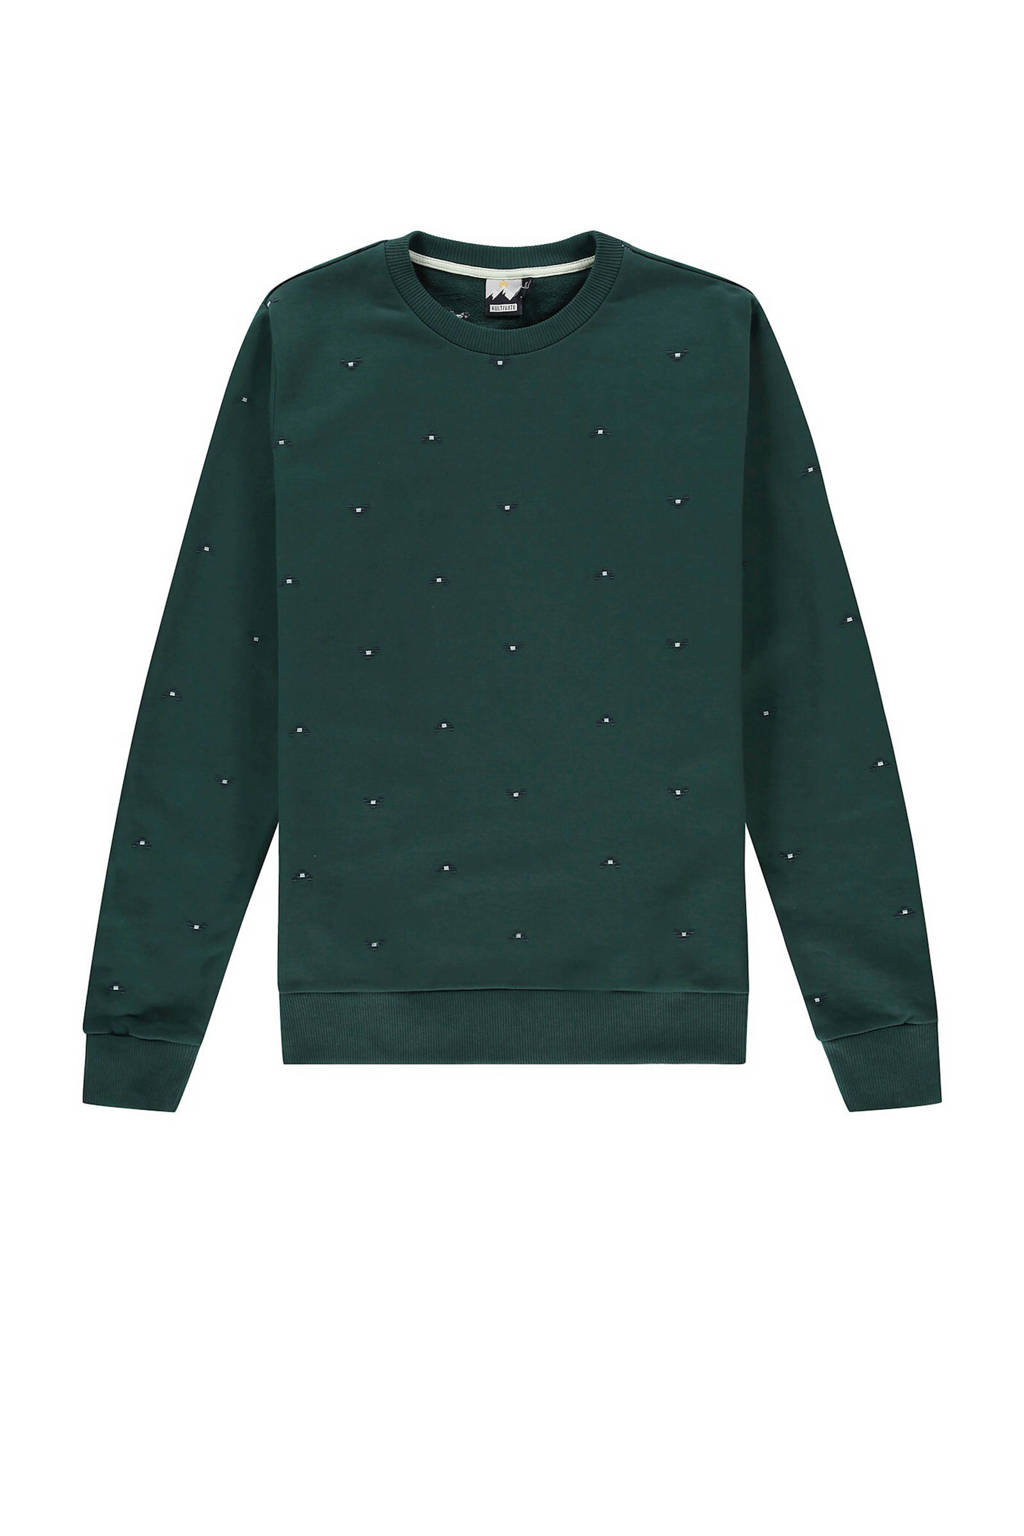 Kultivate sweater met all over print groen, Groen